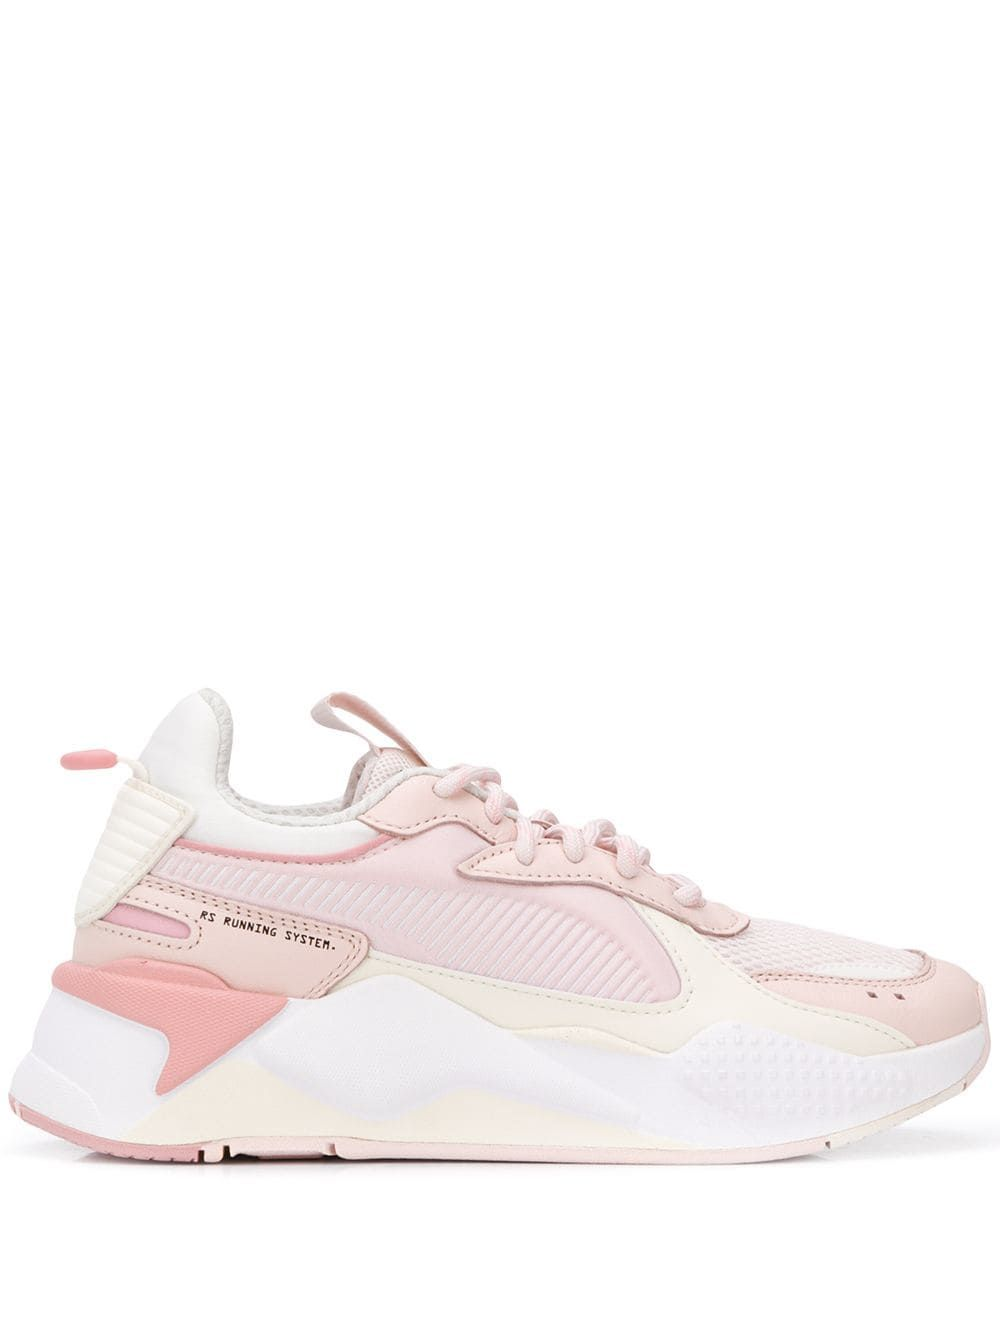 Puma Rs-x Sneakers - Pink   ModeSens